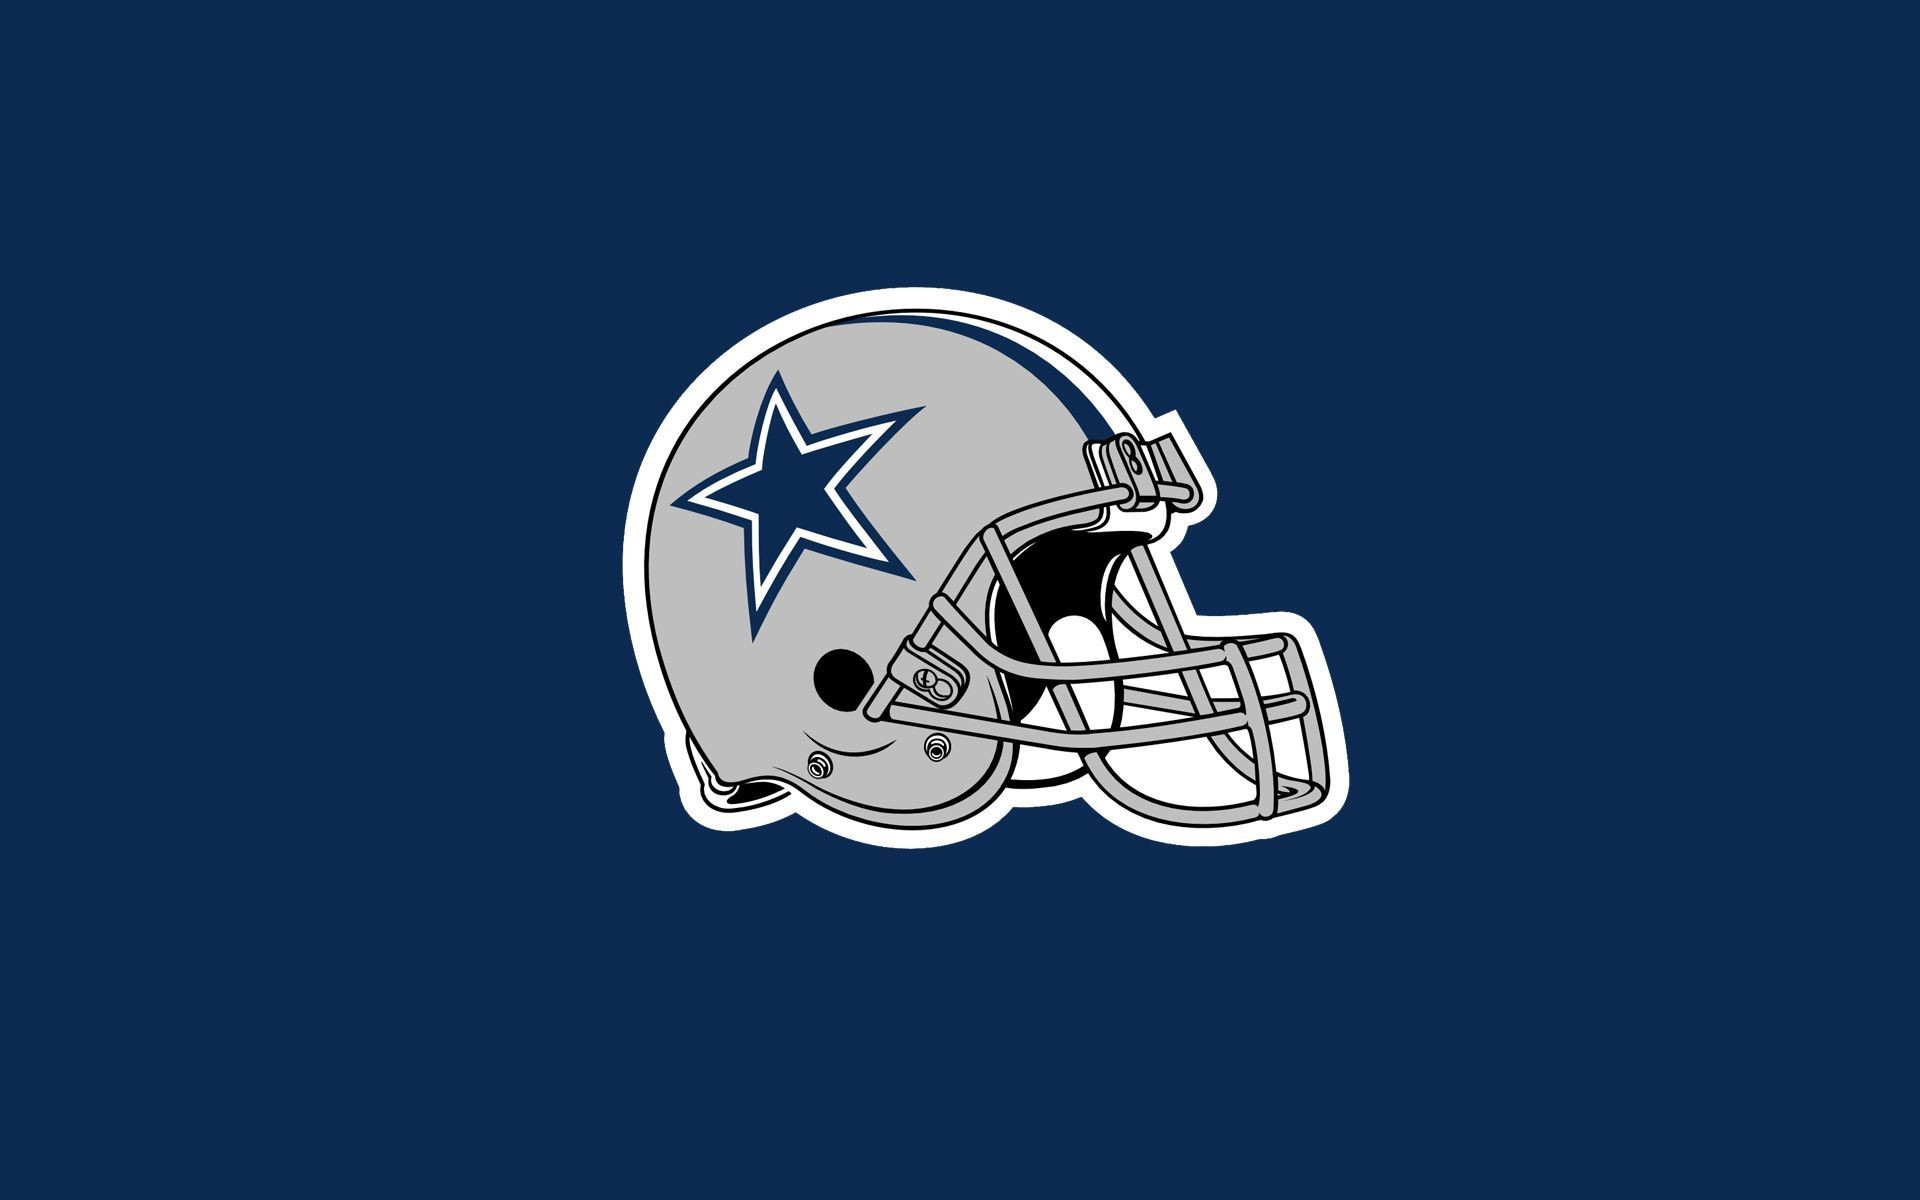 Wallpapers Of Dallas Cowboys Group 1136×640 Free Wallpapers Dallas Cowboys  (32 Wallpapers)